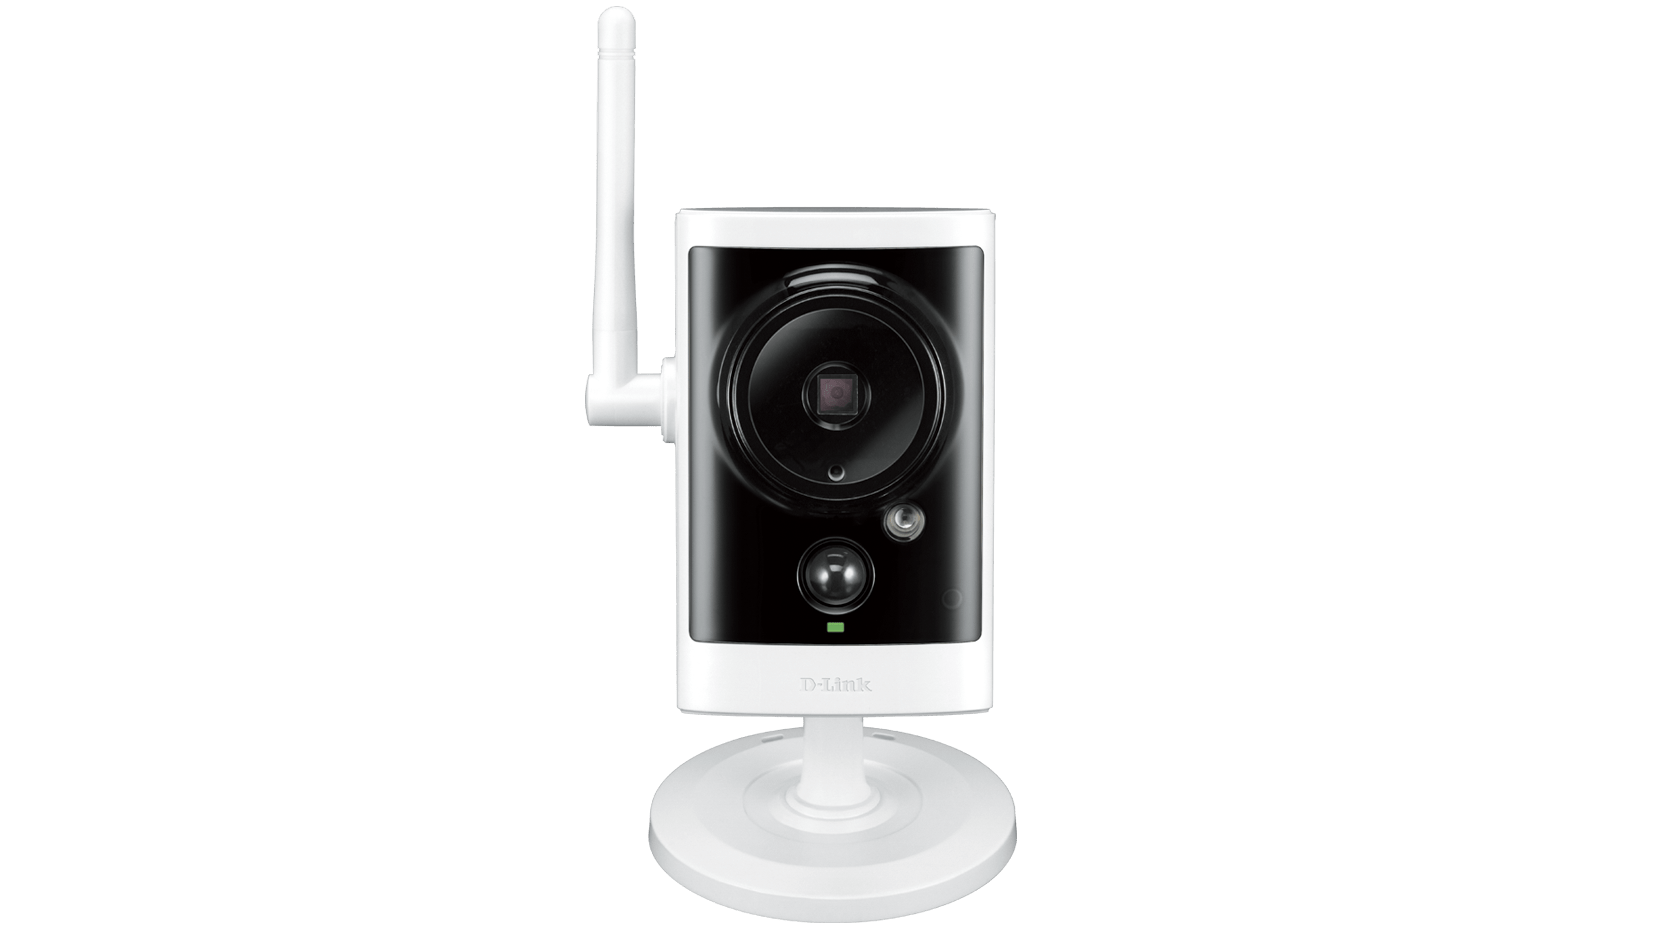 Camera Exterieur Wifi Sans Fil Camera Surveillance Exterieur Wifi Sans Fil Kit Video